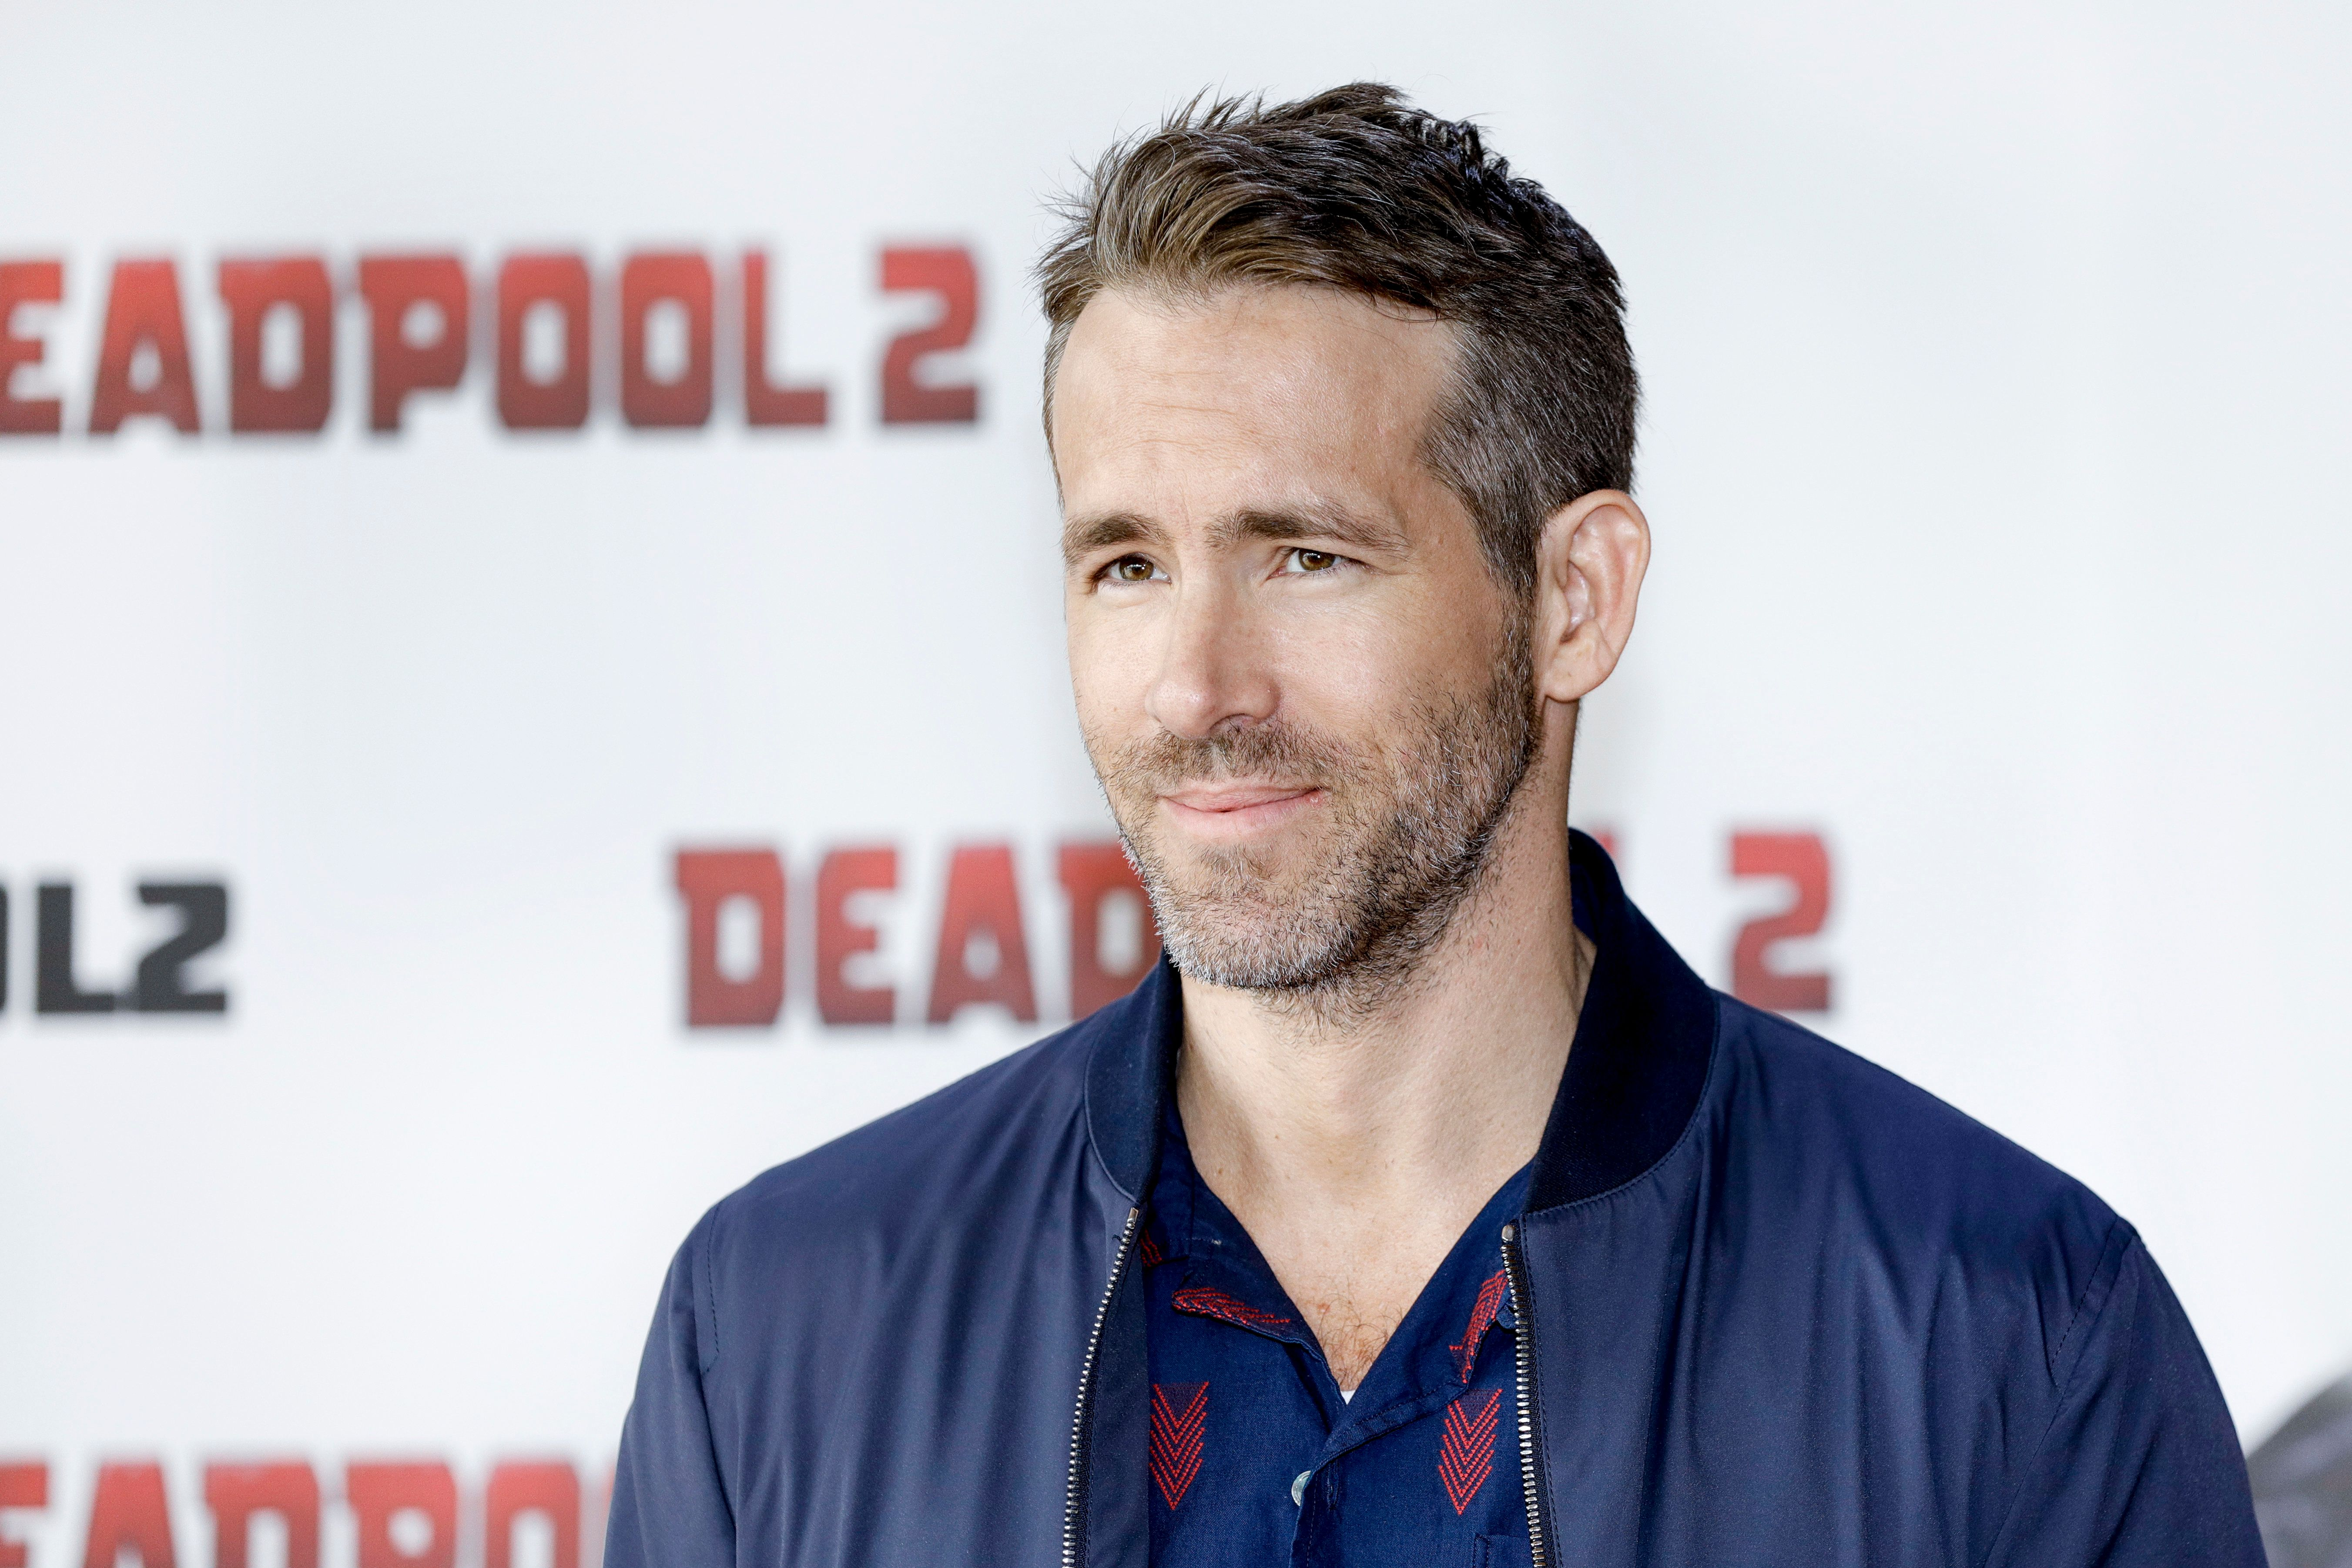 BERLIN, GERMANY - MAY 11: Canadian Actor Ryan Reynolds attends the press conference / photo call of 'Deadpool 2' at Cafe Moskau on May 11, 2018 in Berlin, Germany. (Photo by Isa Foltin/Getty Images)